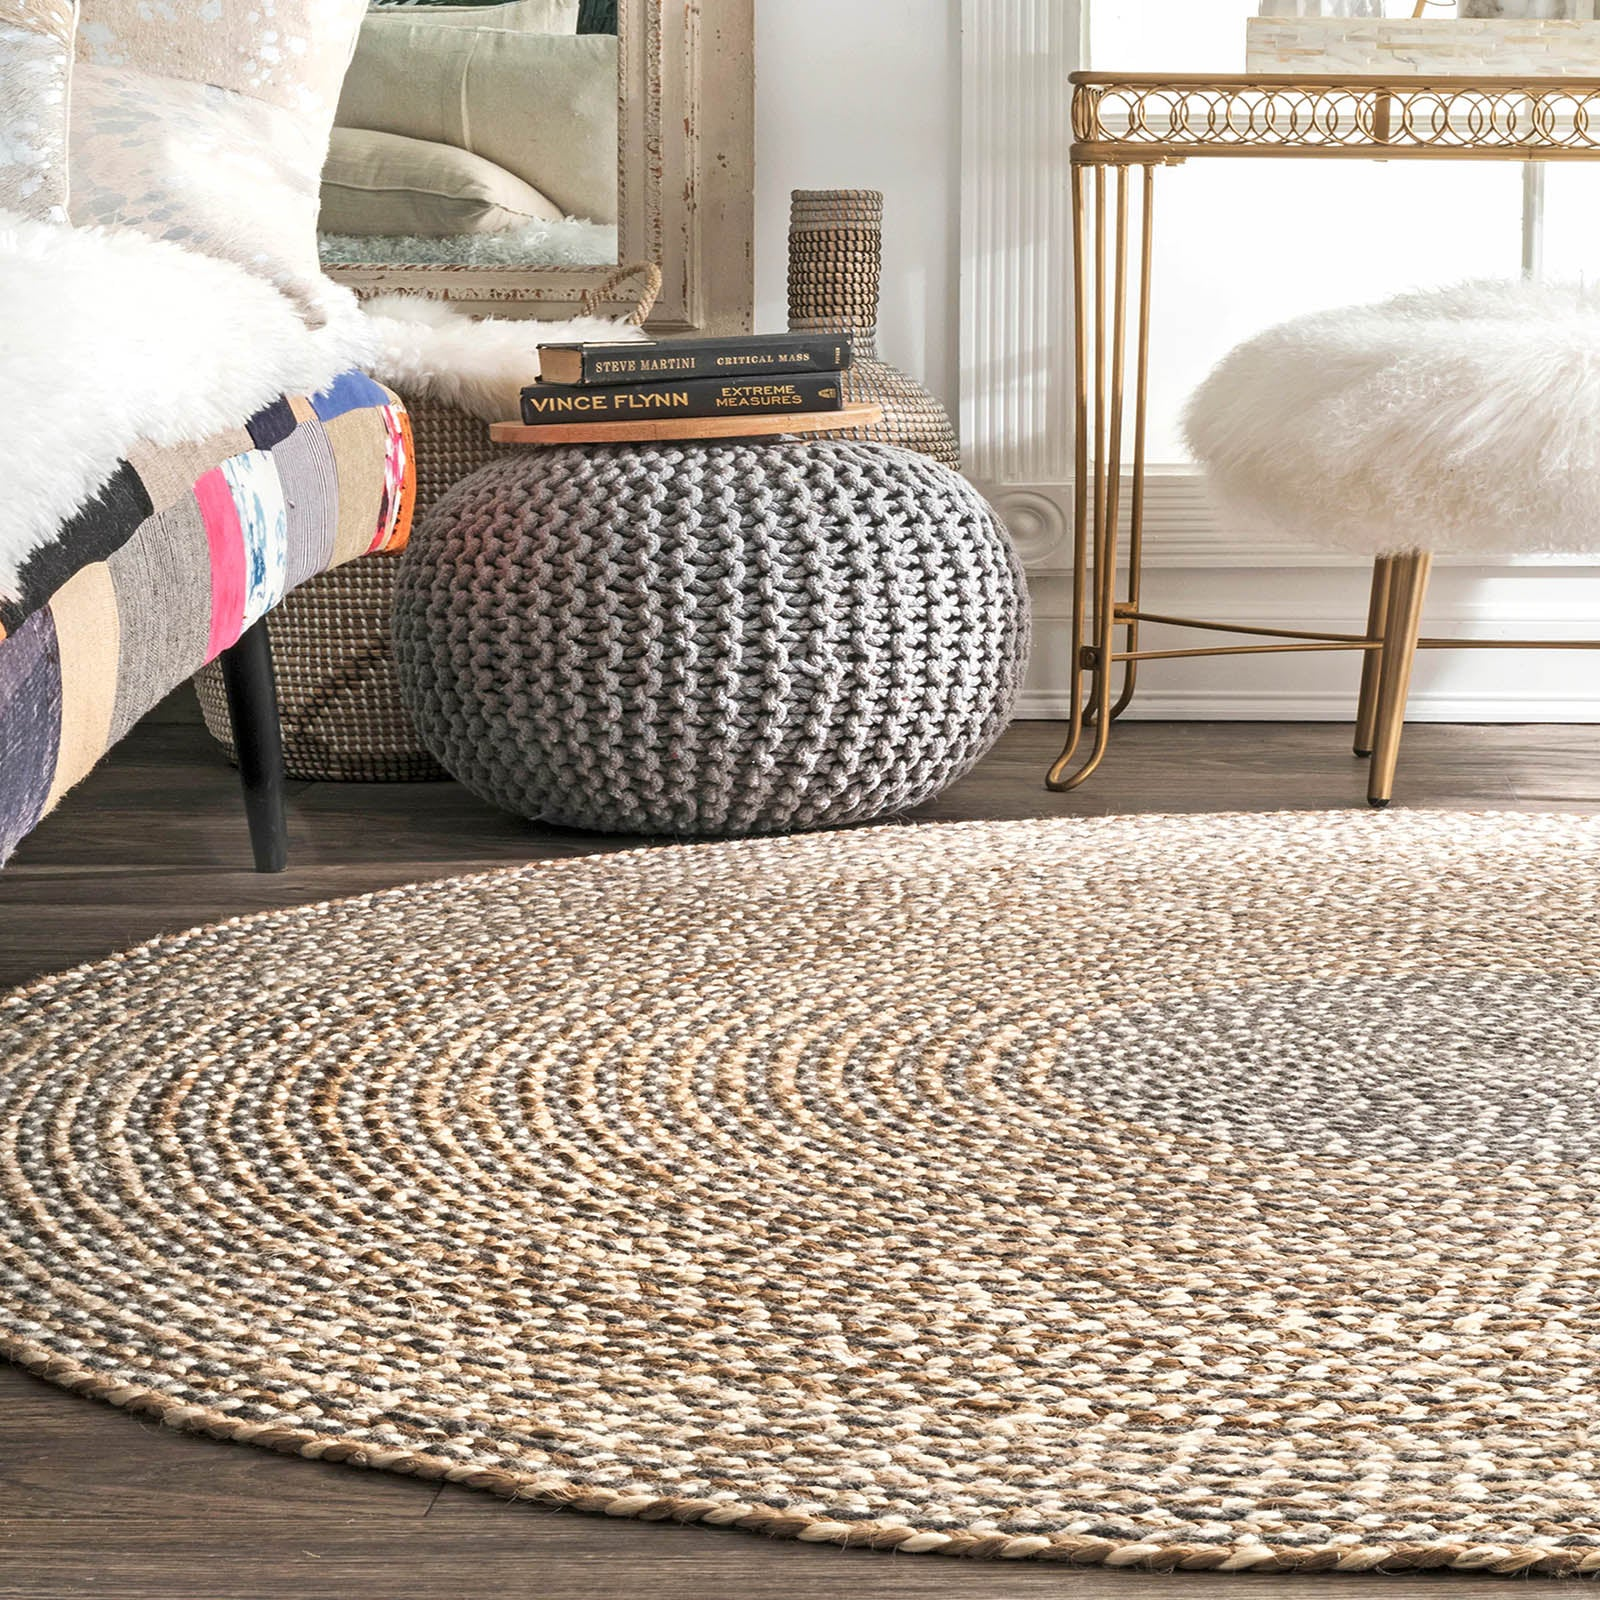 250 CM Braided Round handmade Wool Rug JH-2351-XL -  سجادة صوف دائرية مجدولة 250 سم - Shop Online Furniture and Home Decor Store in Dubai, UAE at ebarza